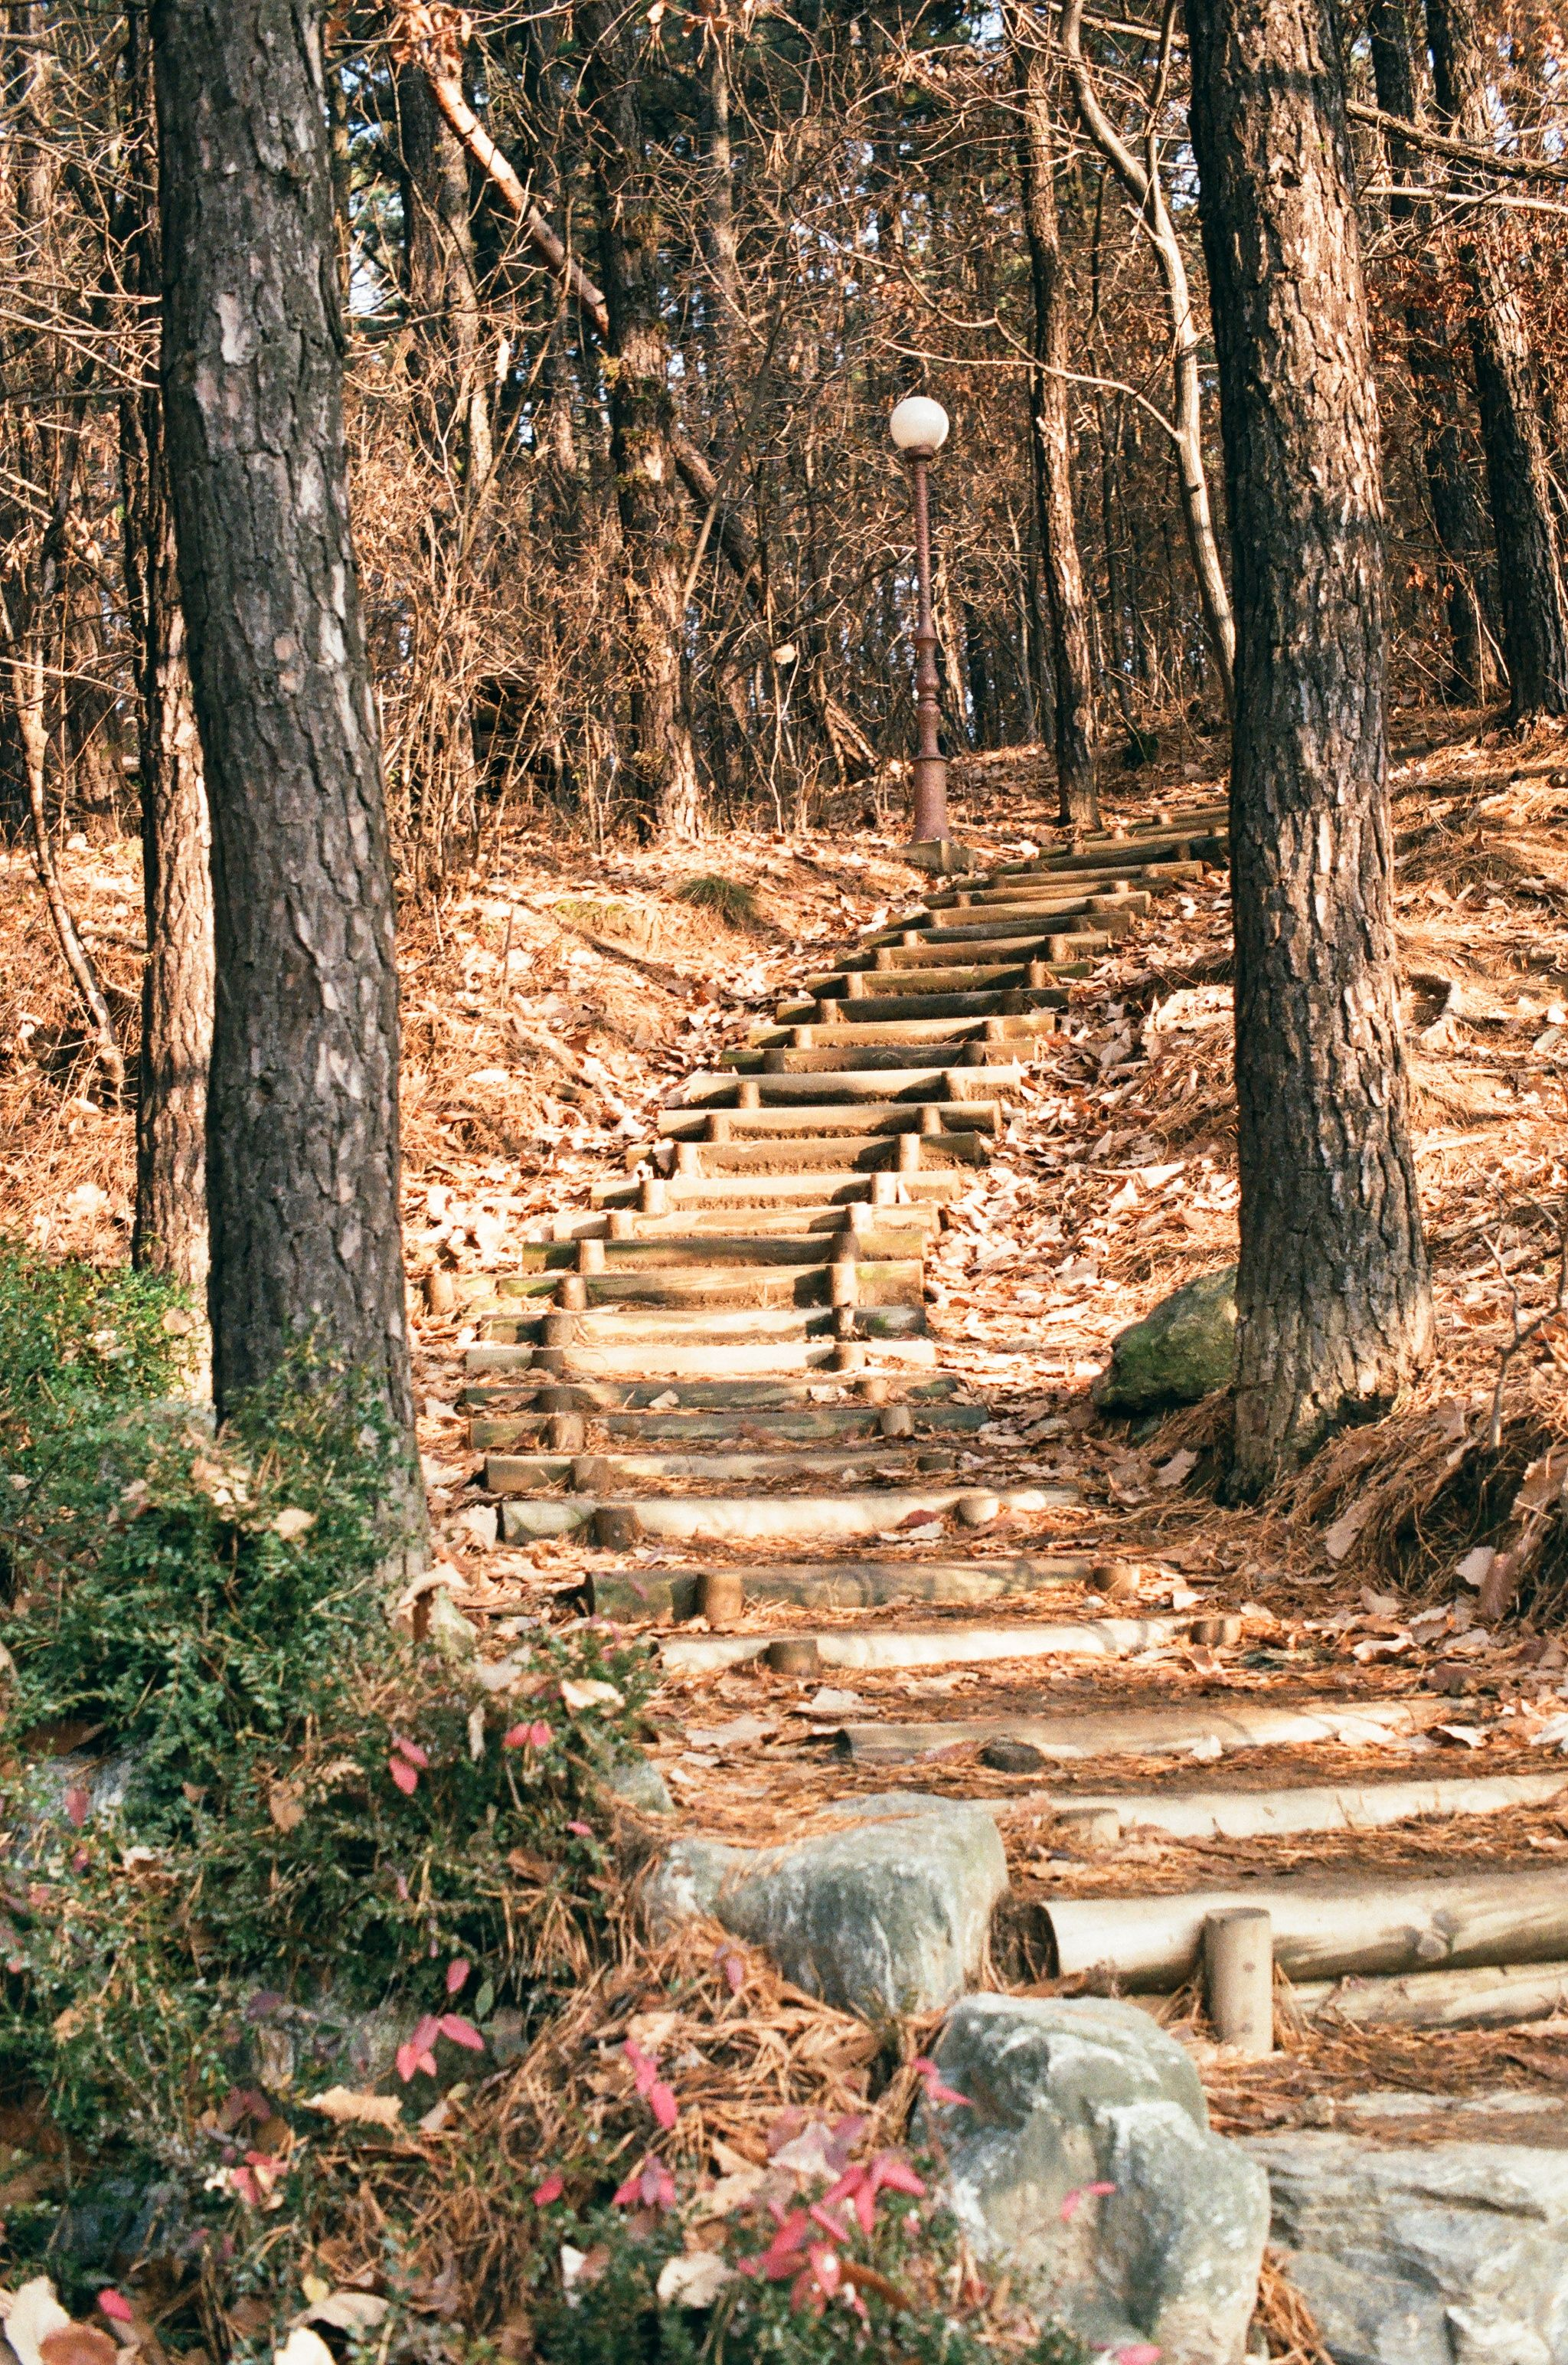 Walking path in Joongang Park, Korea (Pictured by Pentax me-super)